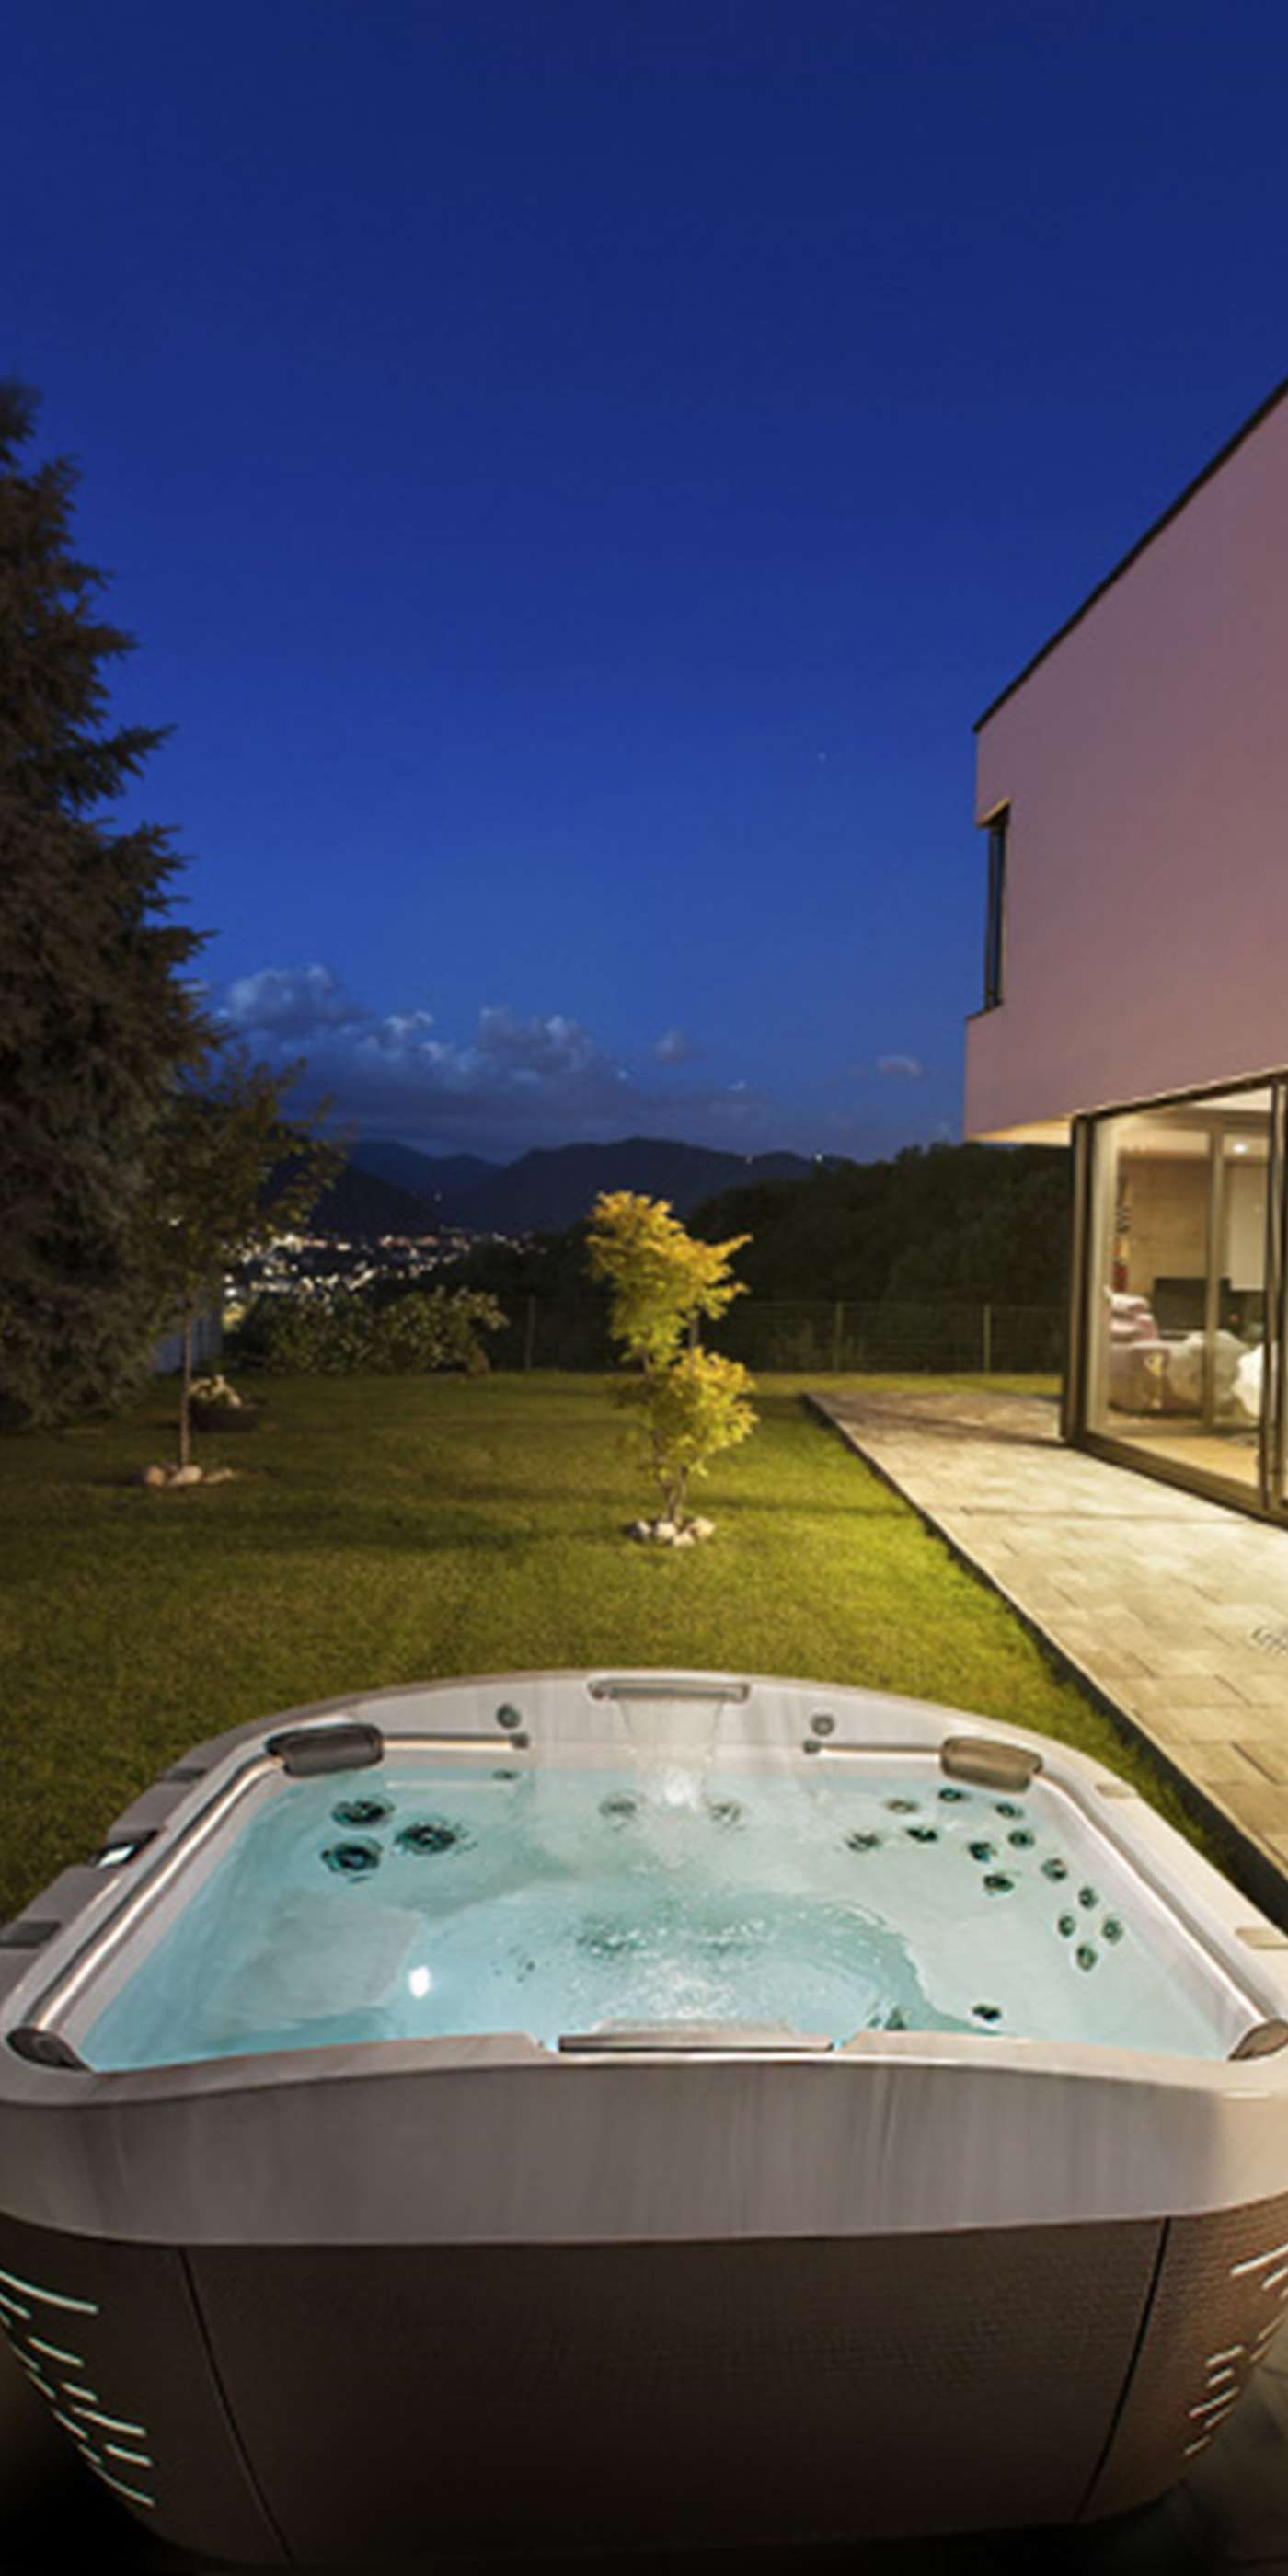 Jacuzzi Is The Original Name In Luxury Hot Tubs Spas Visit Us Today And Find Out Why There Is No Substitute Hot Tub Outdoor Portable Hot Tub Hot Tub